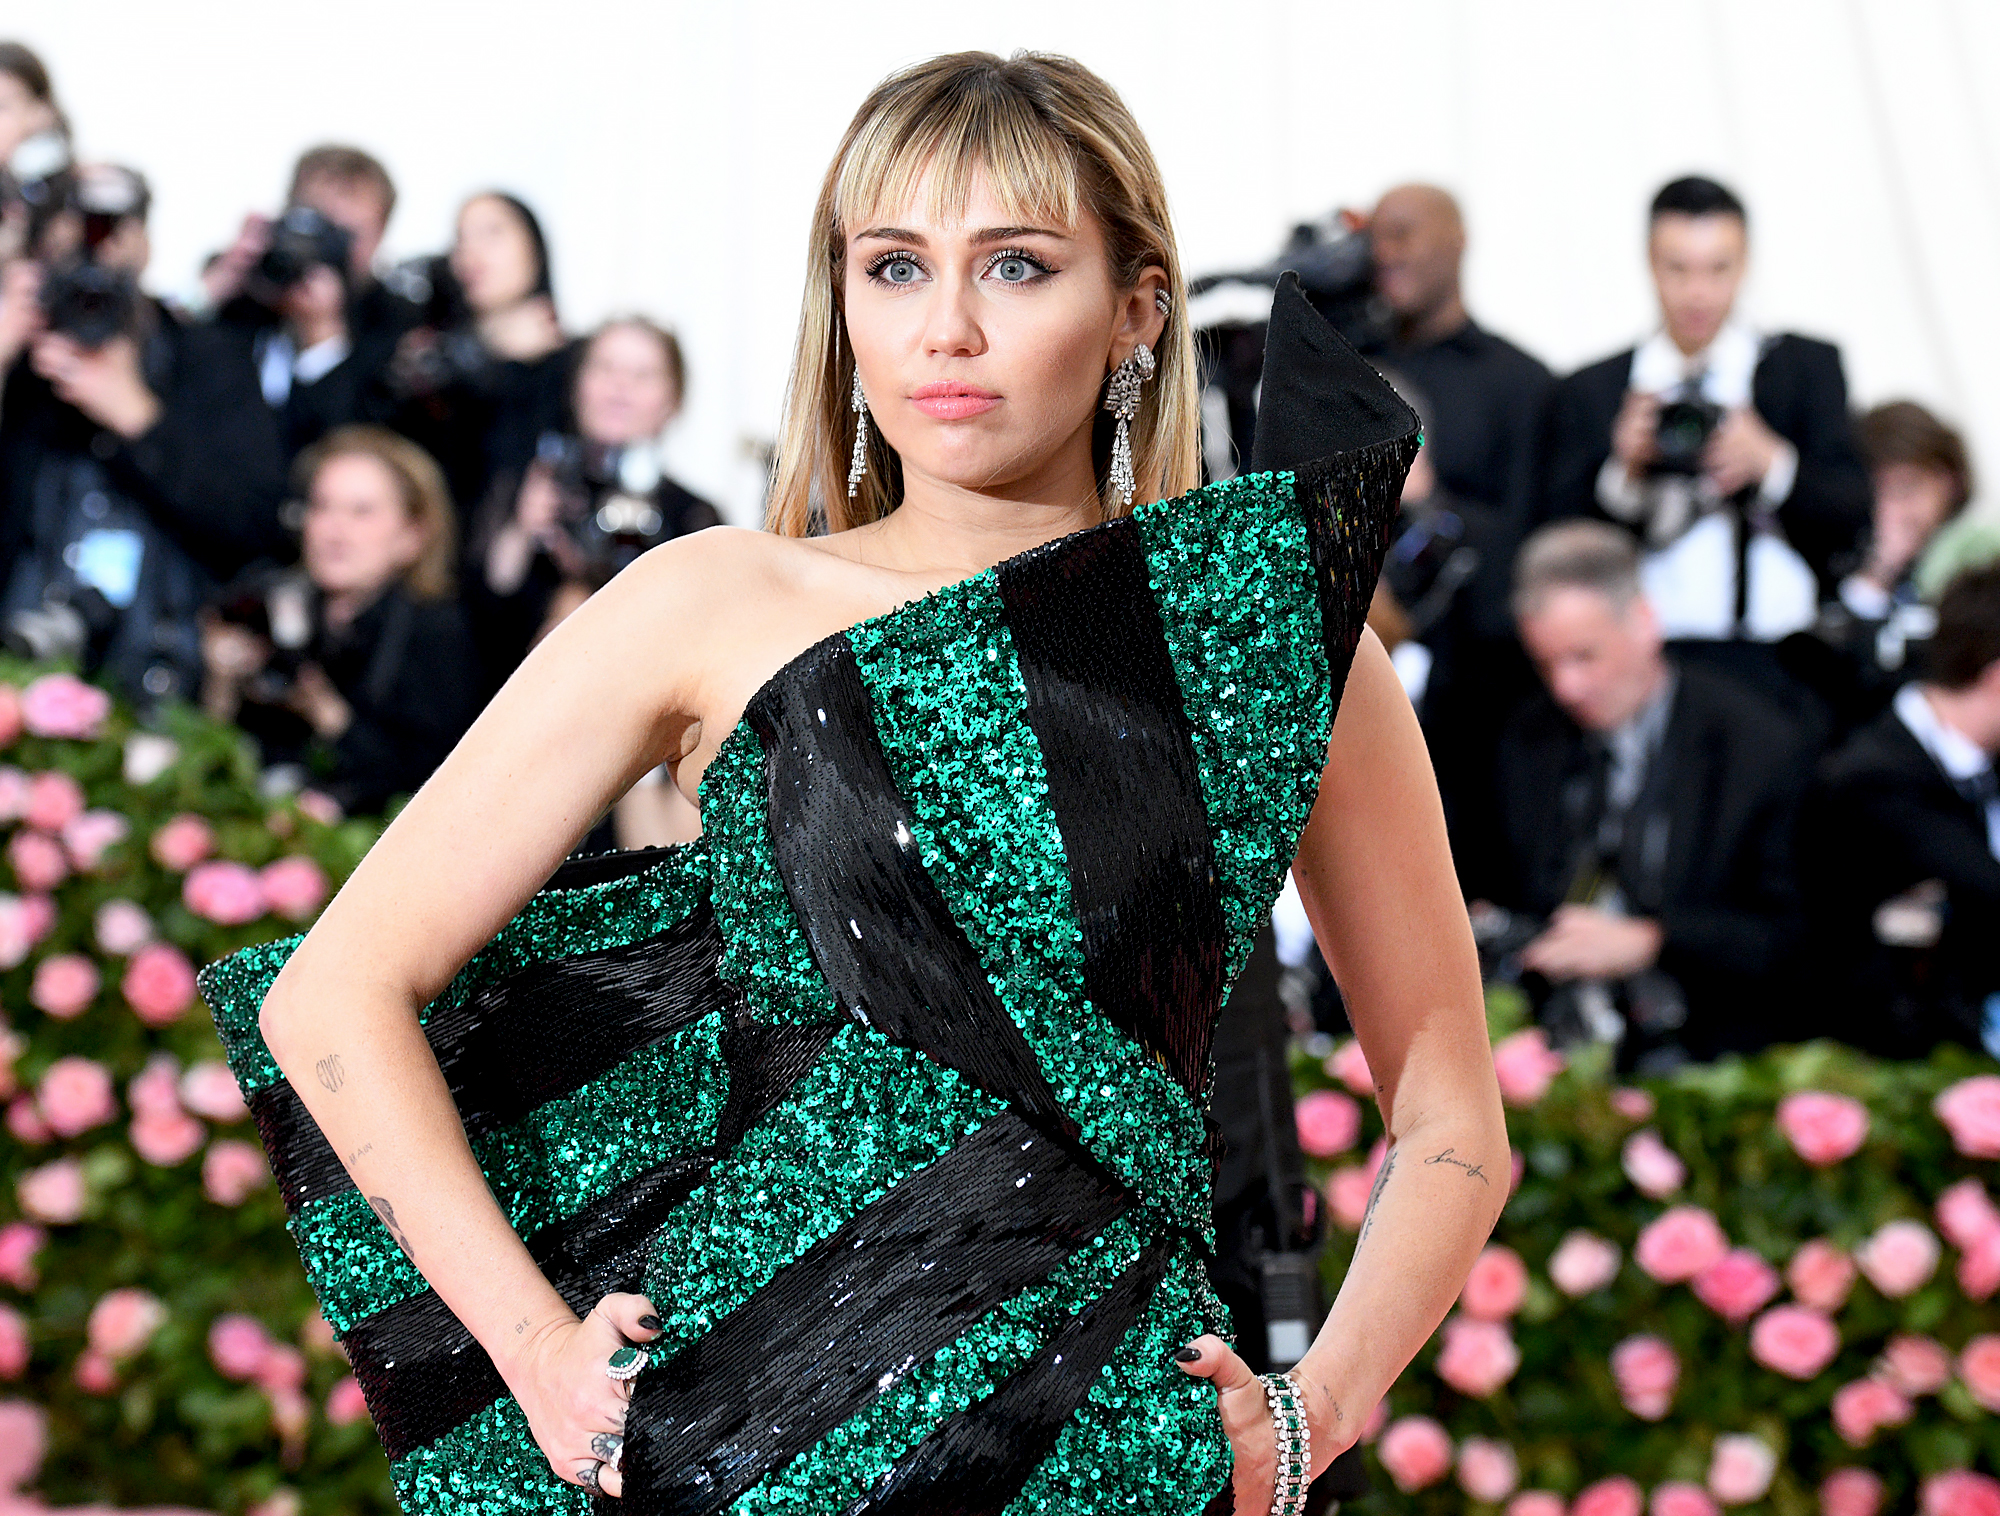 Miley-Cyrus-Clarifies-Sexuality-Comments-After-Backlash